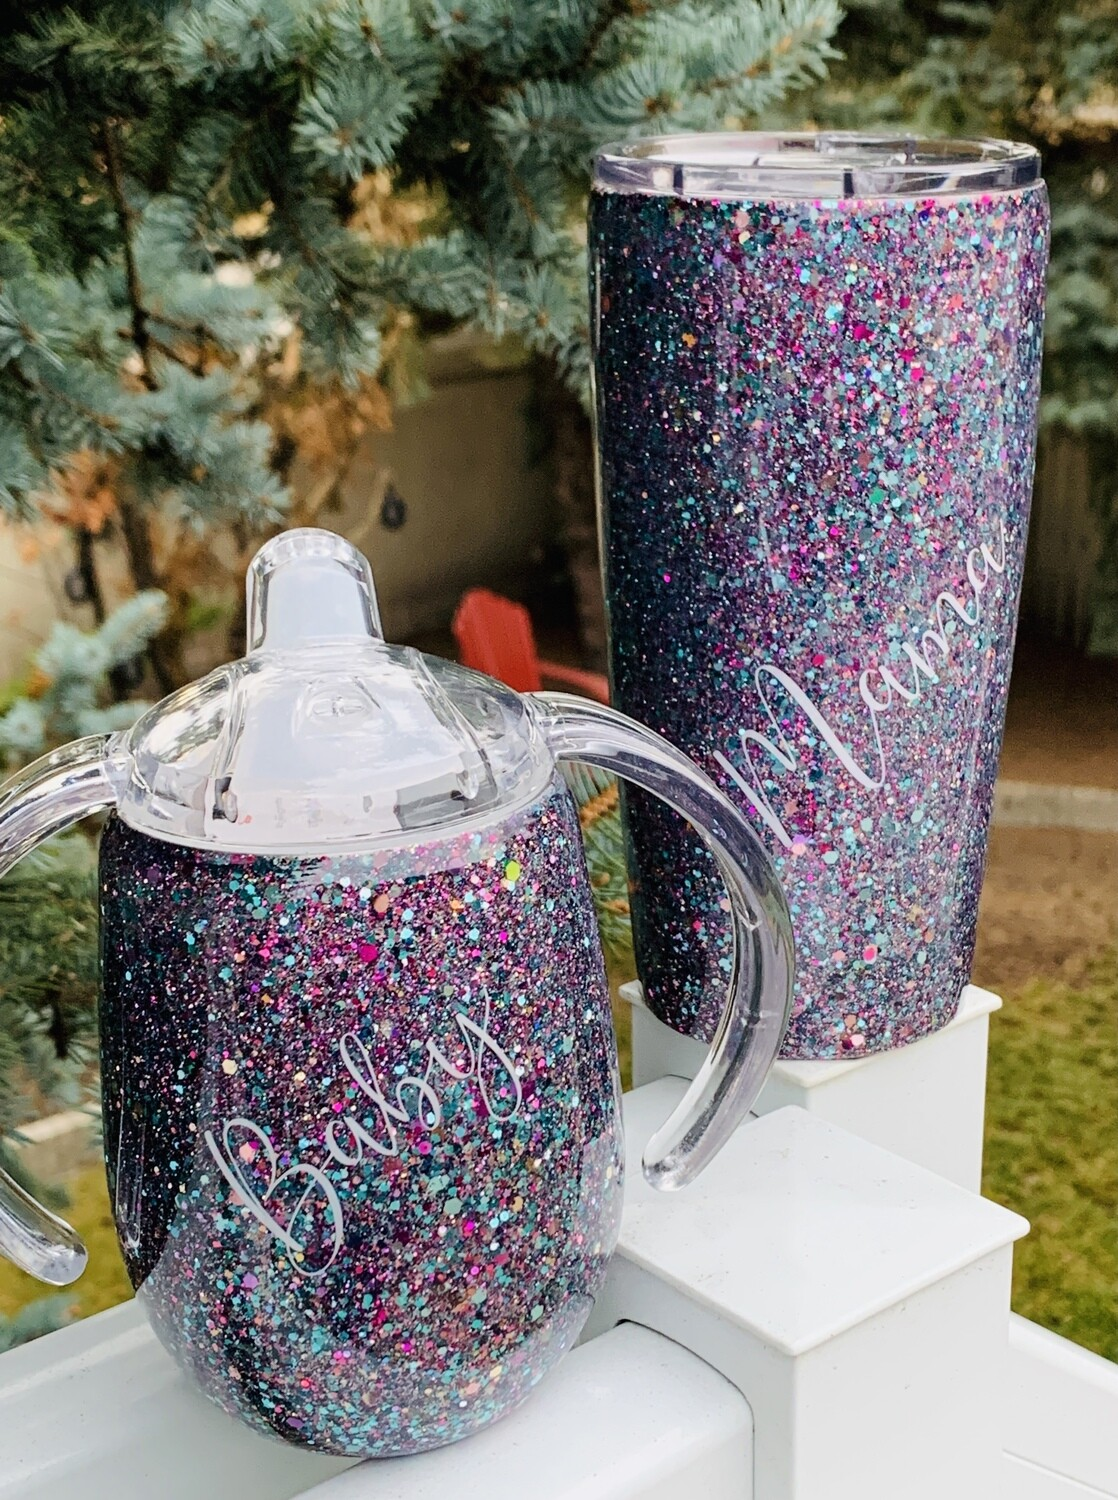 20oz & 9oz stainless steel tumblers with custom mix glitter - Mama/Baby set